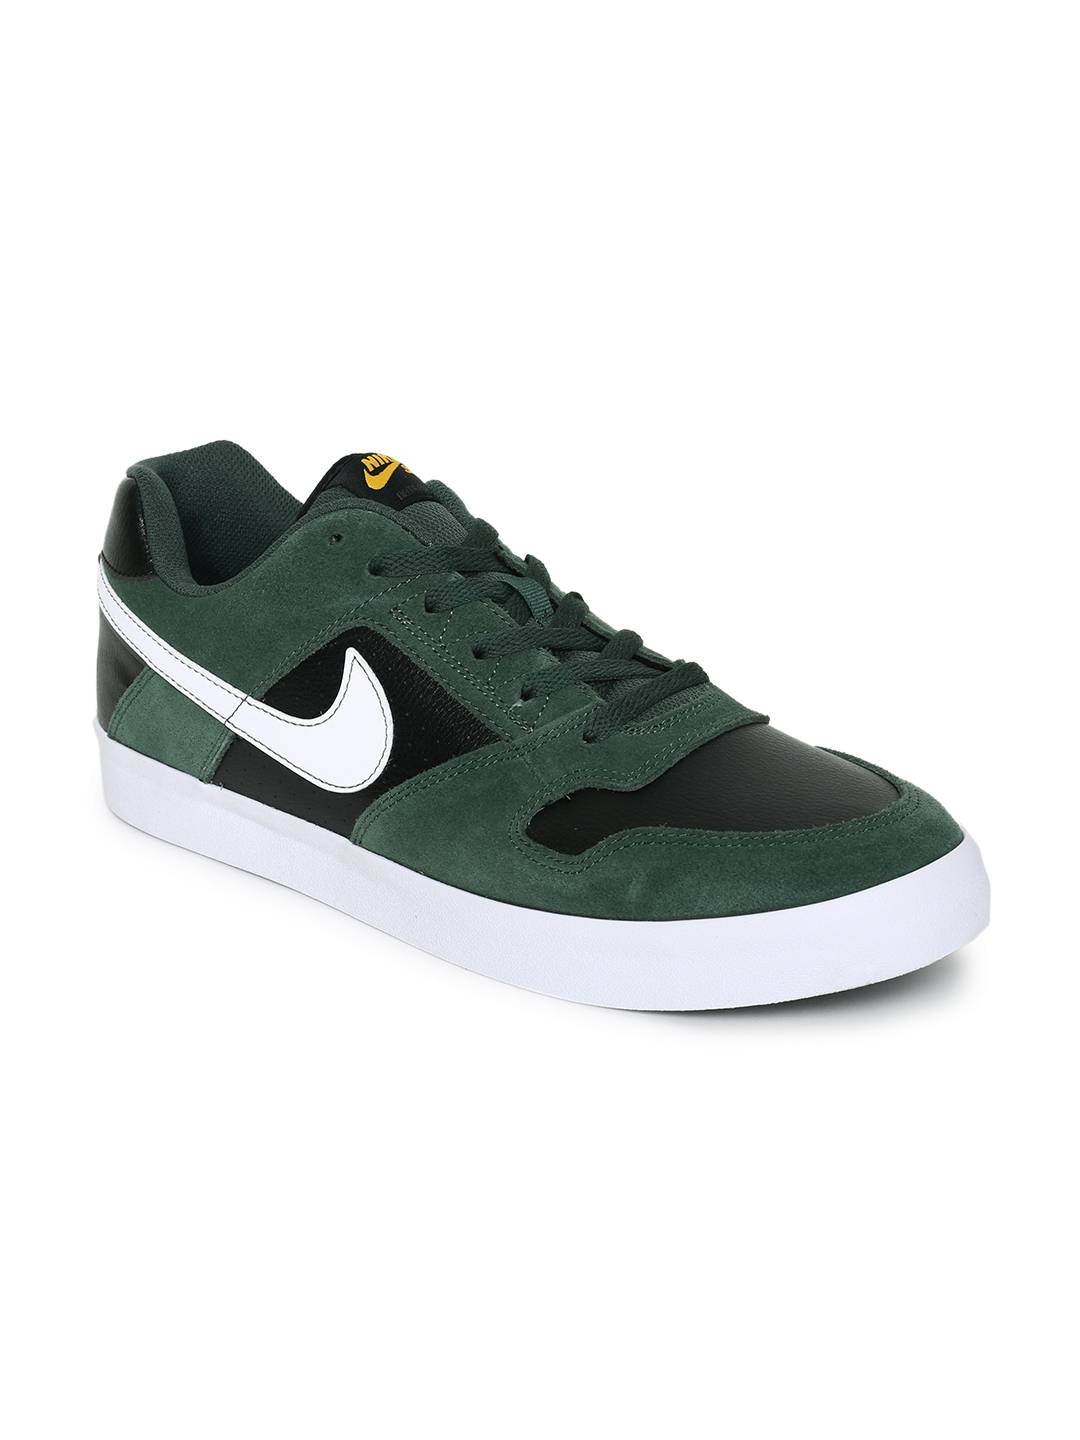 quality design f465c 260f6 Nike Men Green DELTA FORCE VULC Leather Skateboarding Shoes